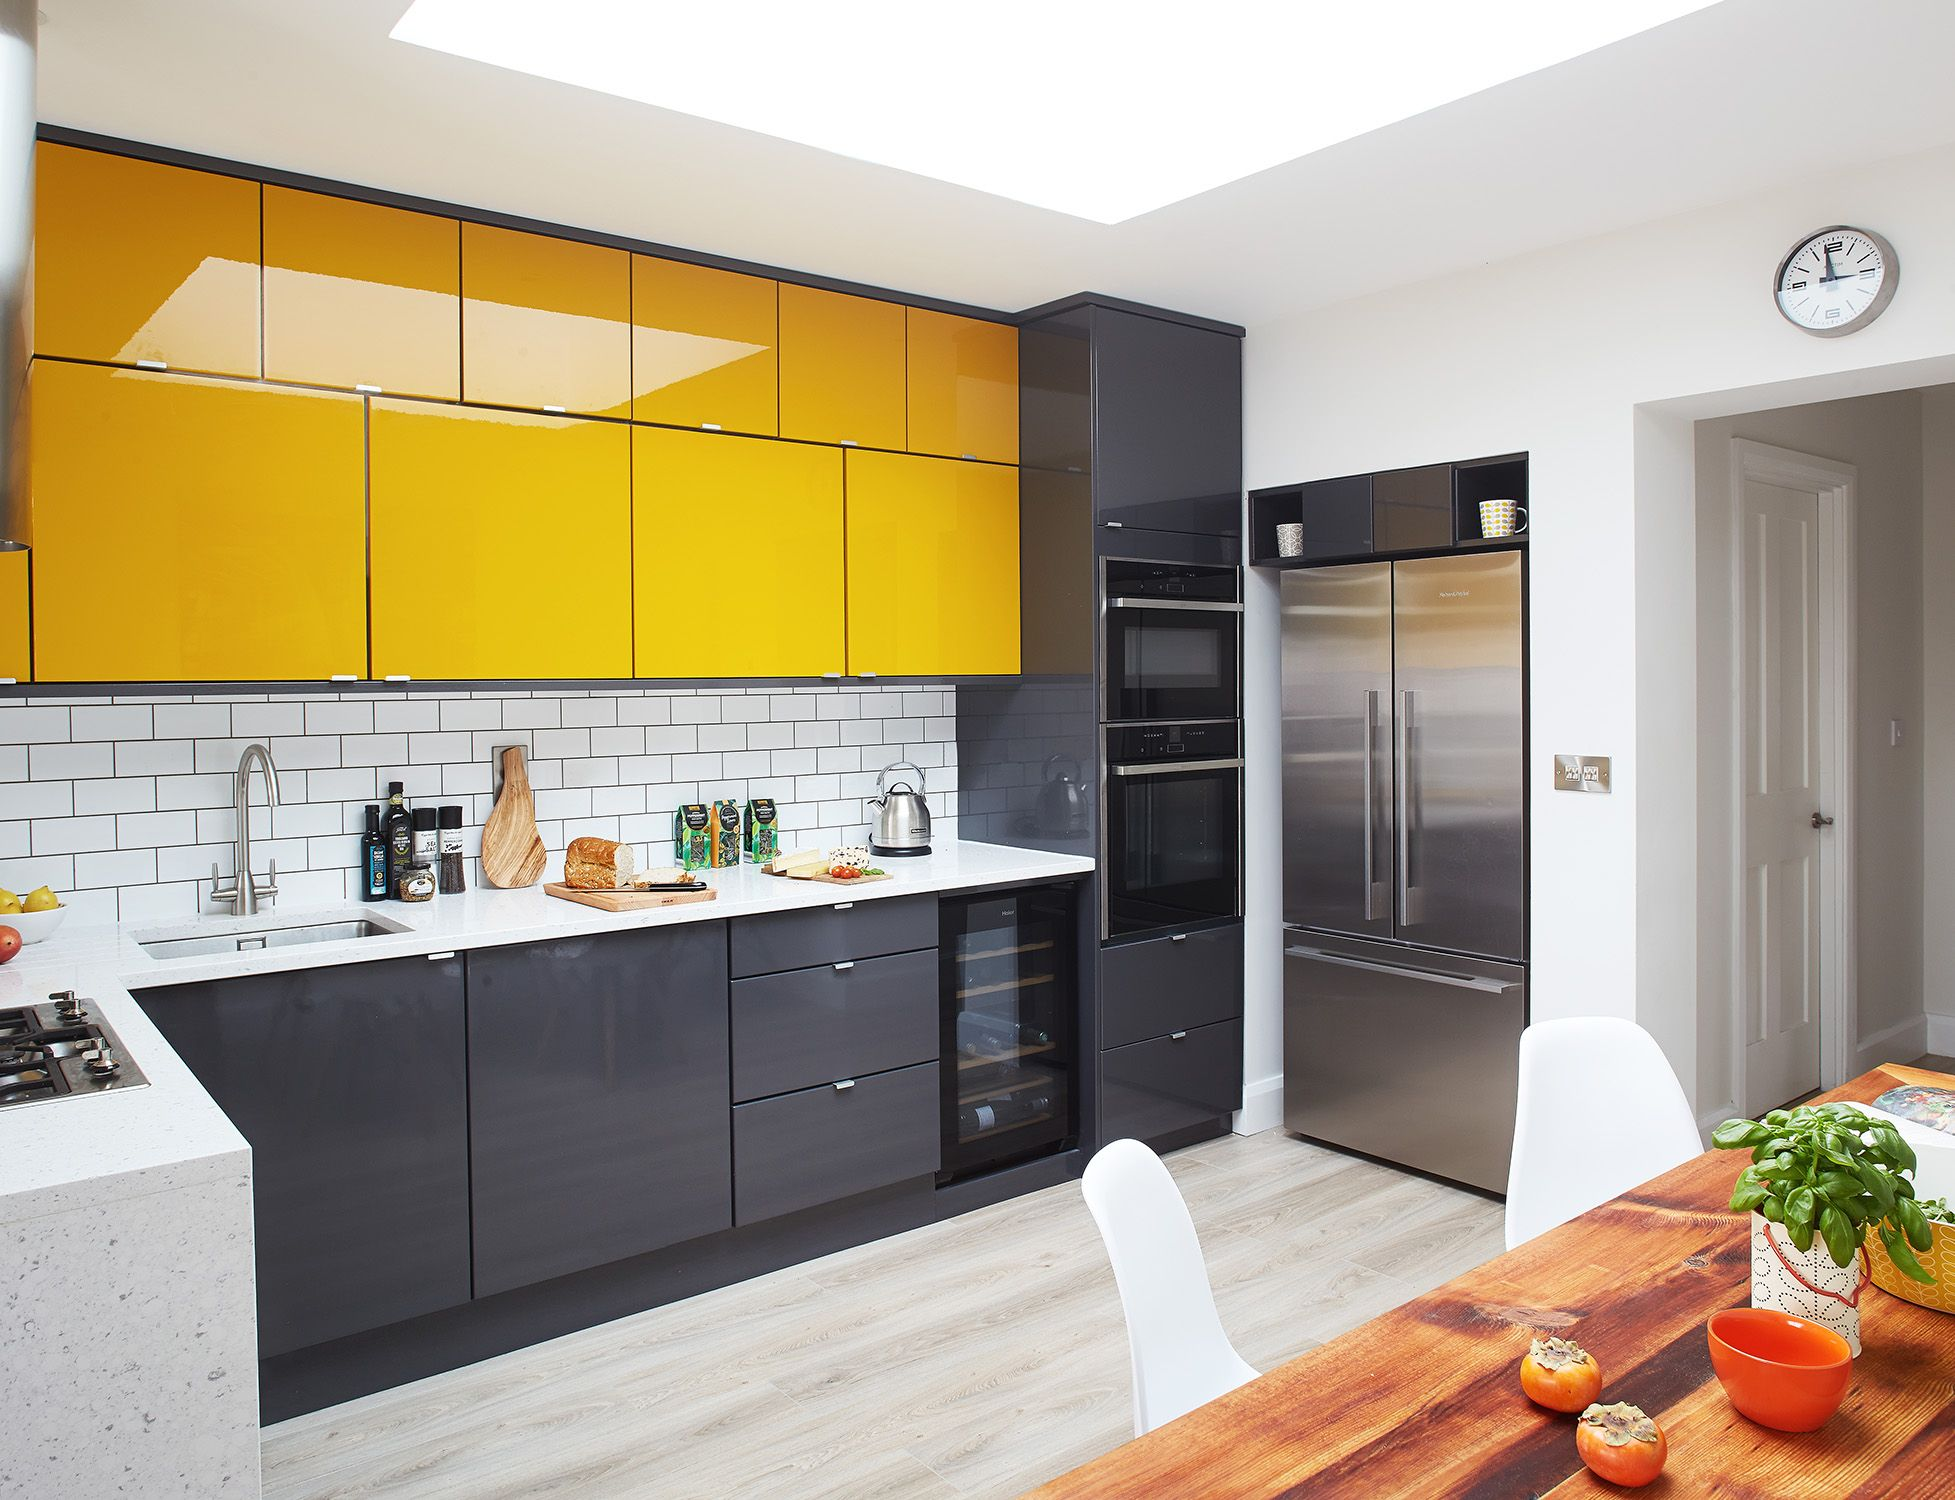 18 Best Kitchen Paint and Wall Colors - Ideas for Por ... Bright Yellow For Kitchen Ideas on golden yellow kitchen ideas, bright country kitchen ideas, yellow kitchen decorating ideas, yellow kitchen wall ideas, bright yellow room ideas, bright yellow interiors, bright yellow fashion, gray and yellow kitchen ideas, bright yellow bathroom ideas, bright yellow kitchen decorations, yellow kitchen color ideas, bright yellow living rooms, blue and yellow kitchen ideas, lemon yellow kitchen ideas, yellow country kitchen ideas, soft yellow kitchen ideas, bright yellow color, bright yellow dining room, bright yellow walls, bright yellow laundry rooms,